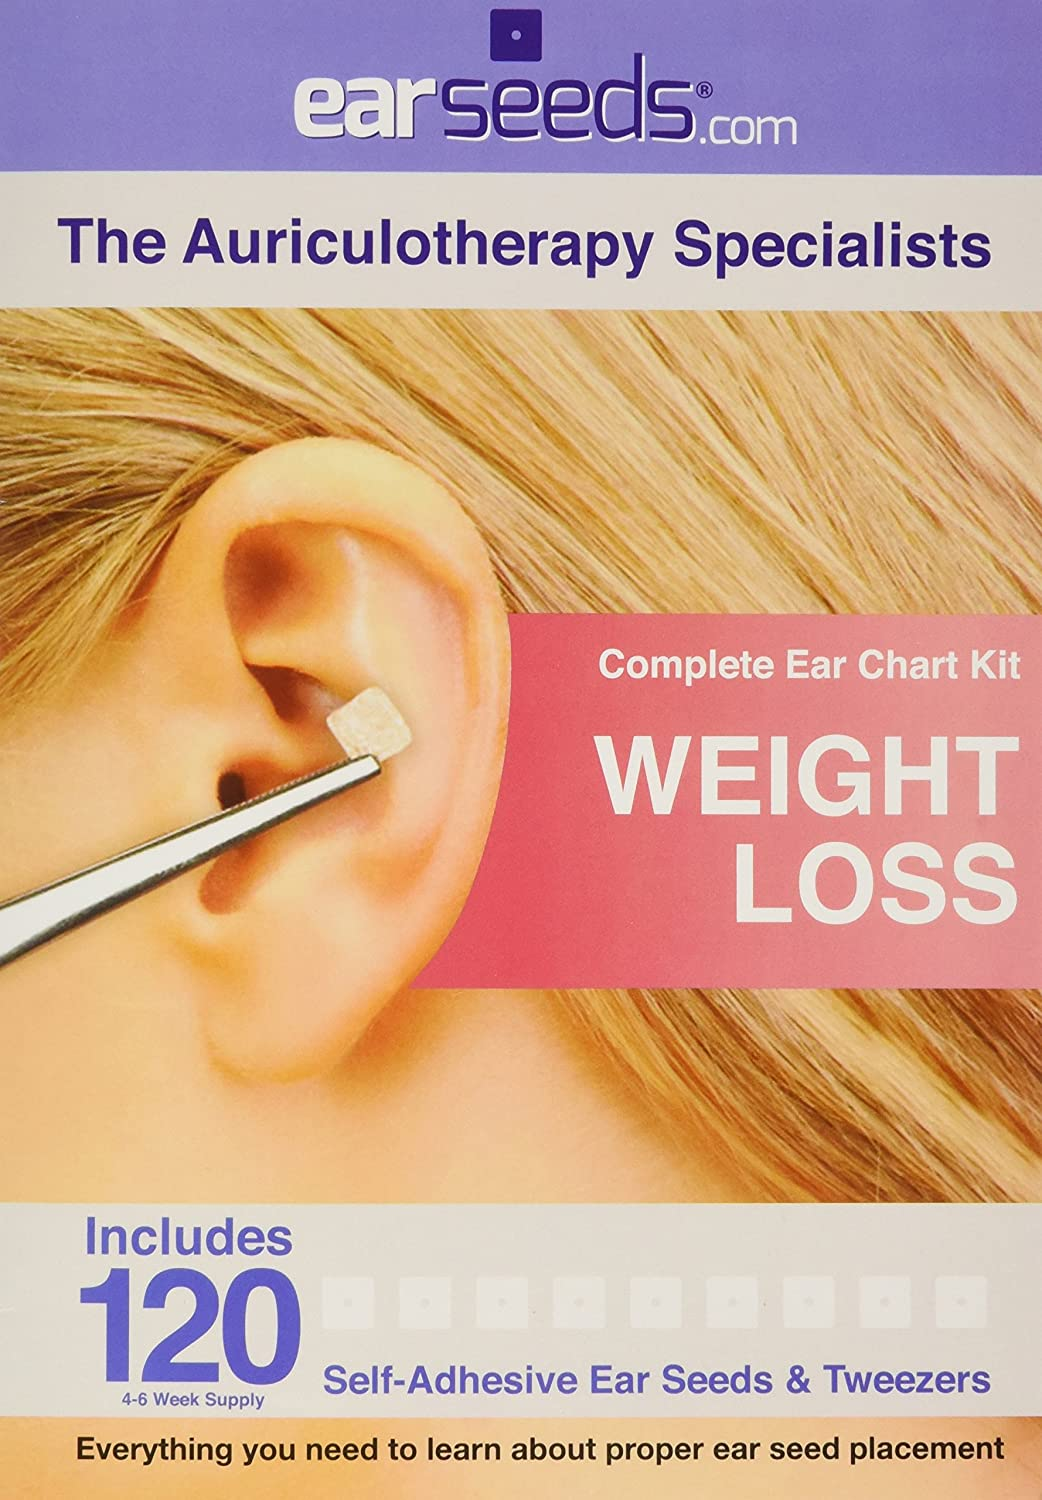 Amazon weight loss ear seed kit 120 vaccaria ear seeds amazon weight loss ear seed kit 120 vaccaria ear seeds stainless steel tweezer health personal care nvjuhfo Images